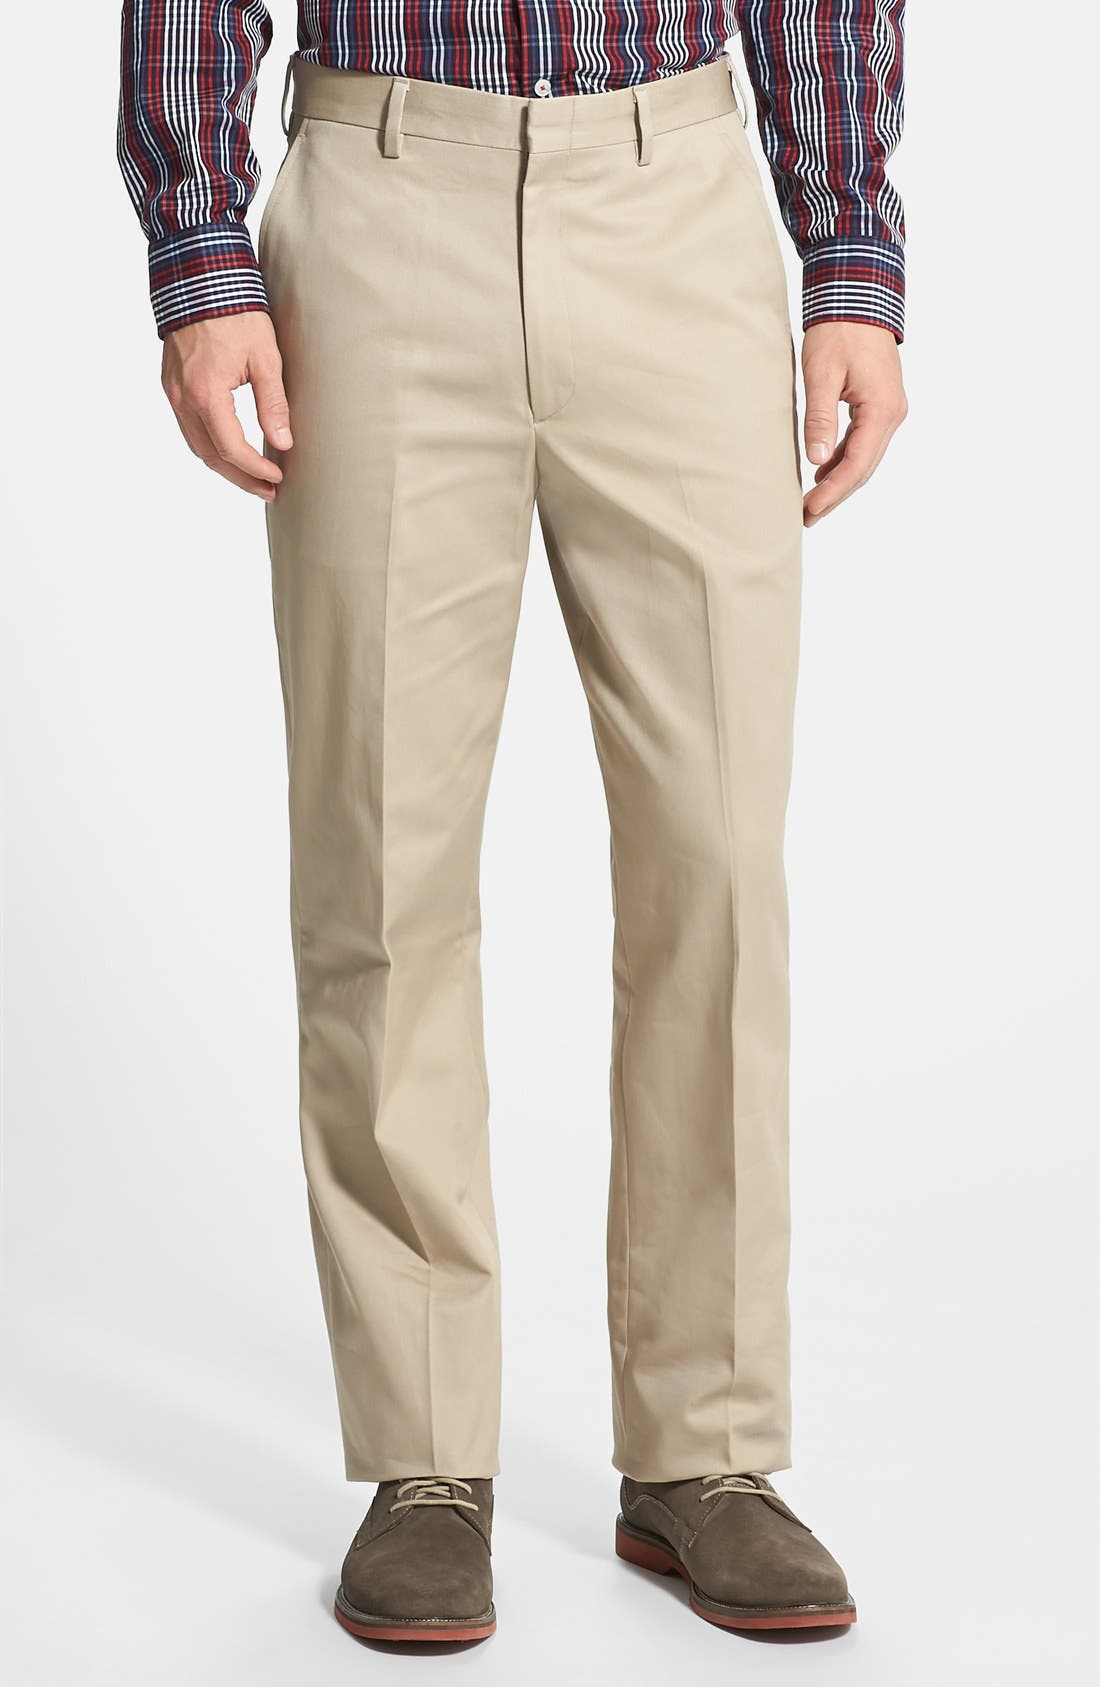 Main Image - Berle Flat Front Wrinkle Resistant Cotton Trousers